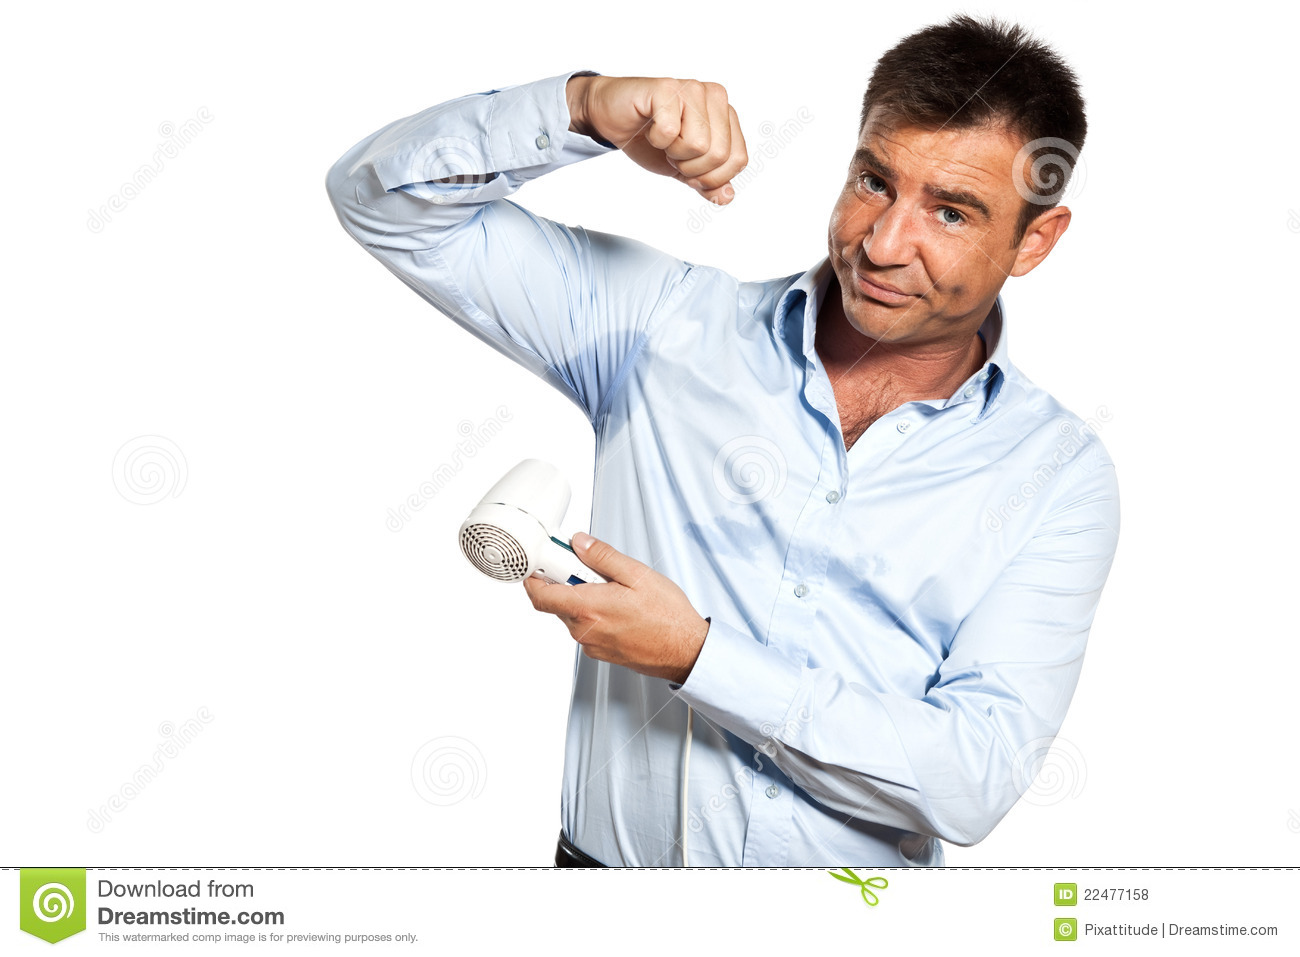 One man sweat stain perspire drying shirt stock photo for Sweat stains on shirt